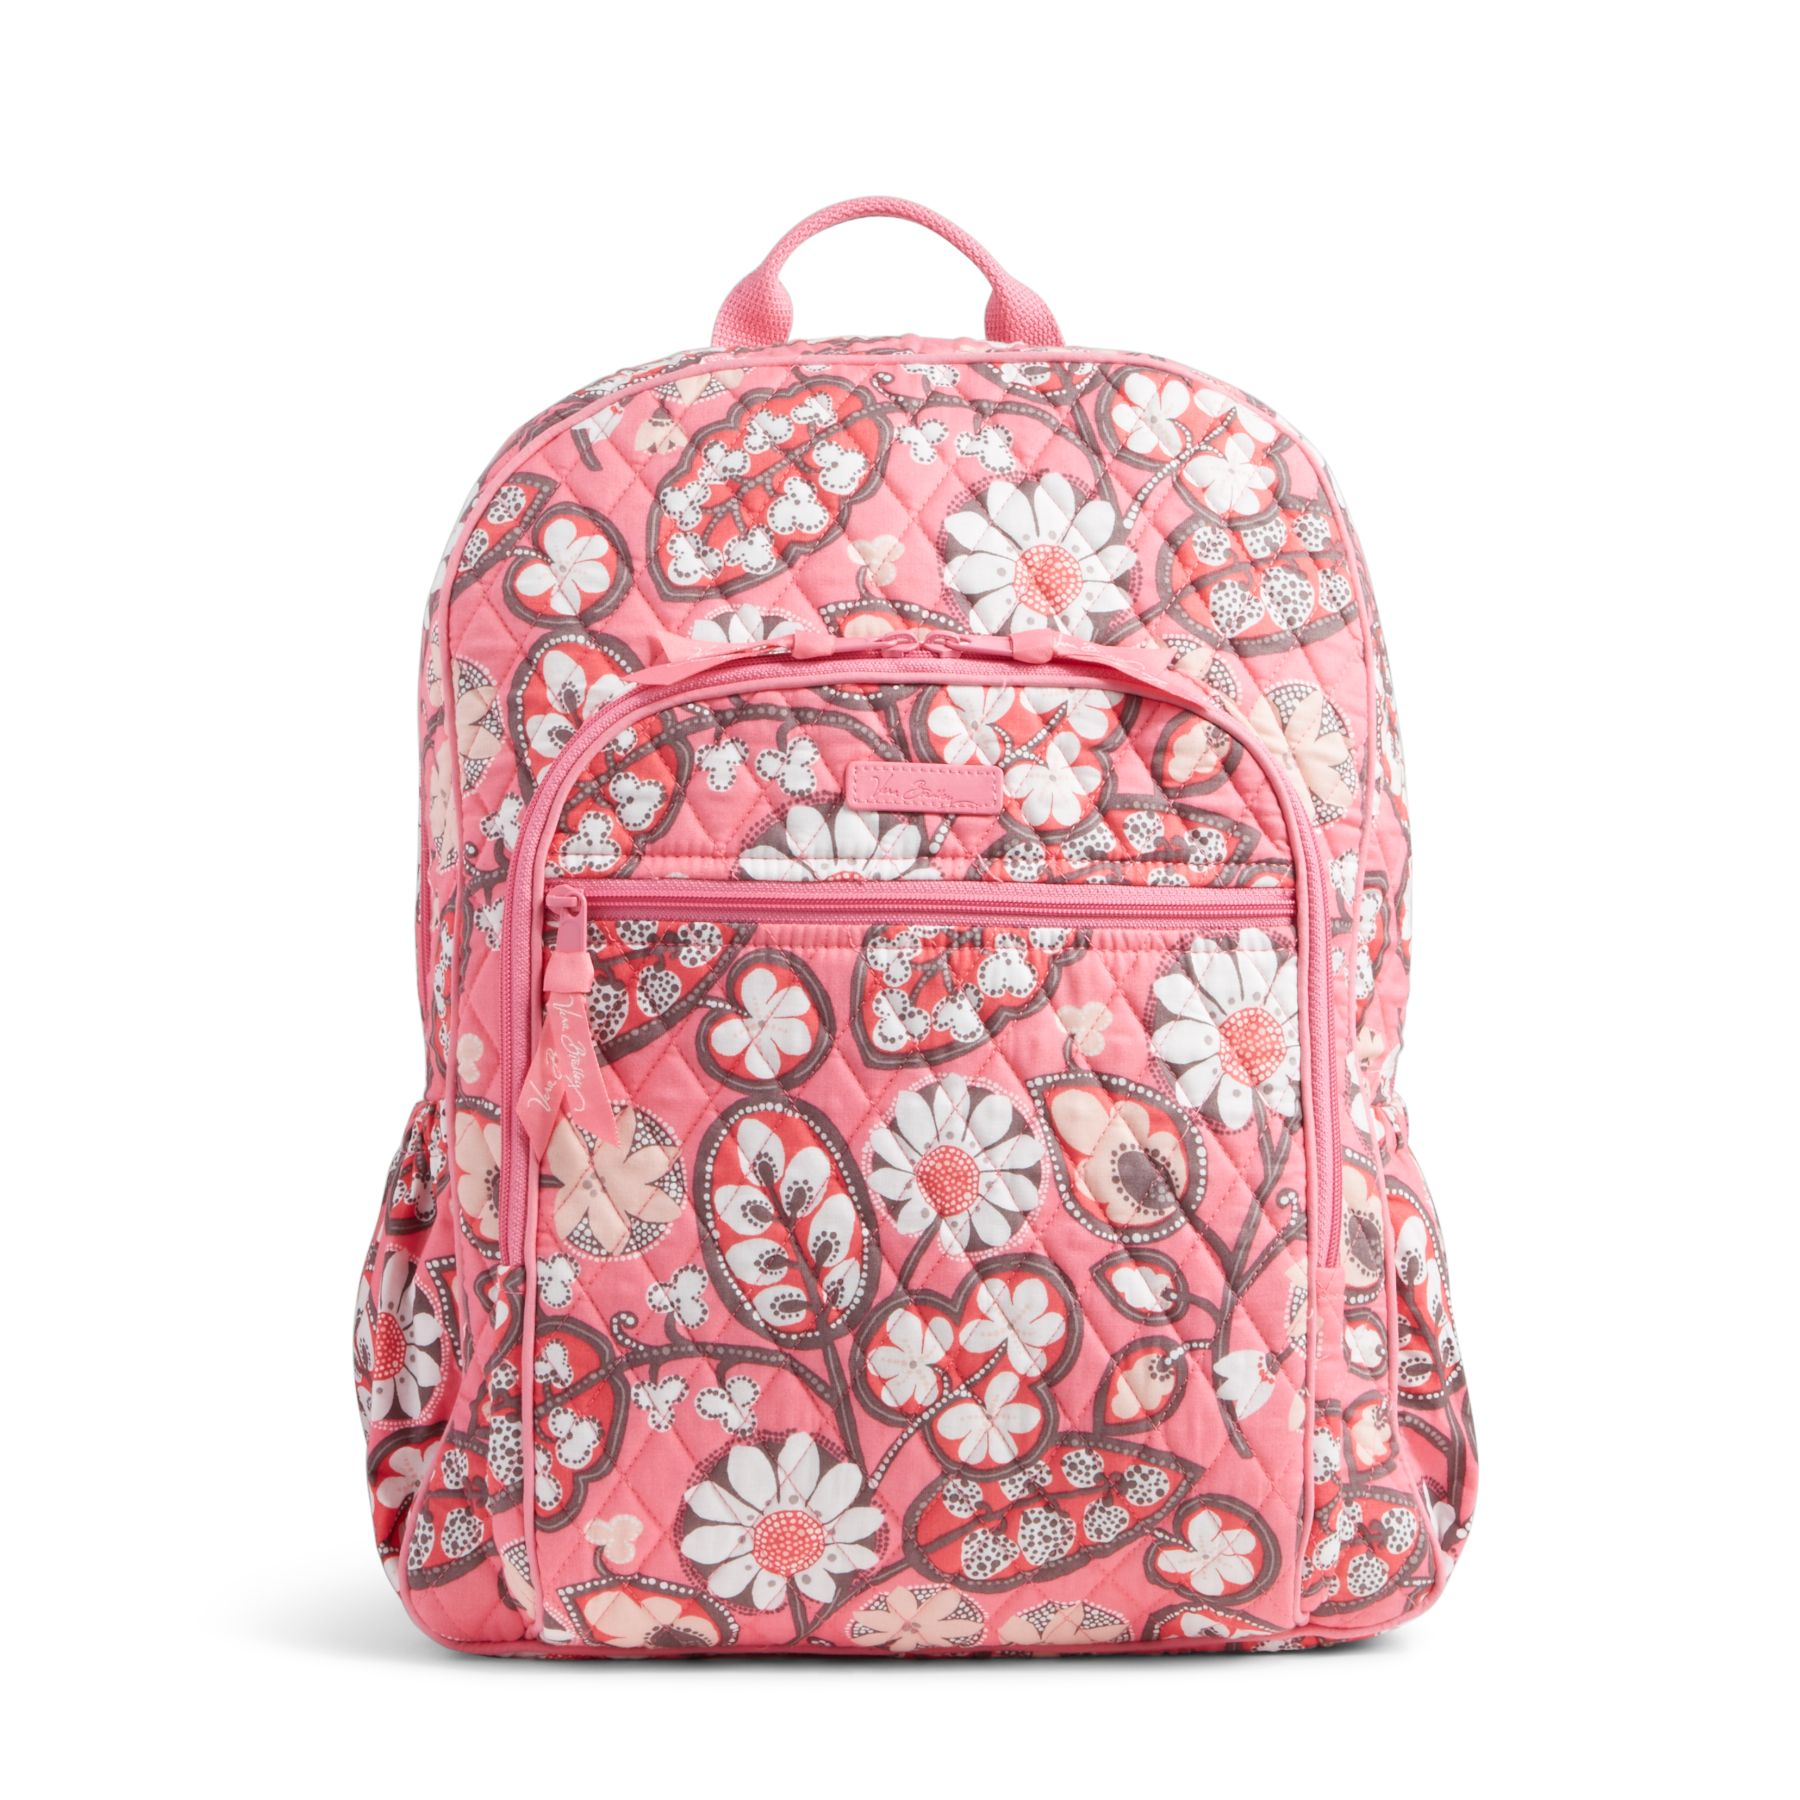 Shop the biggest brands in backpacks like JanSport, The North Face, High Sierra & Dakine at eBags for school and business all with free shipping! As the largest online retailer of bags since , we at eBags definitely know backpacks.